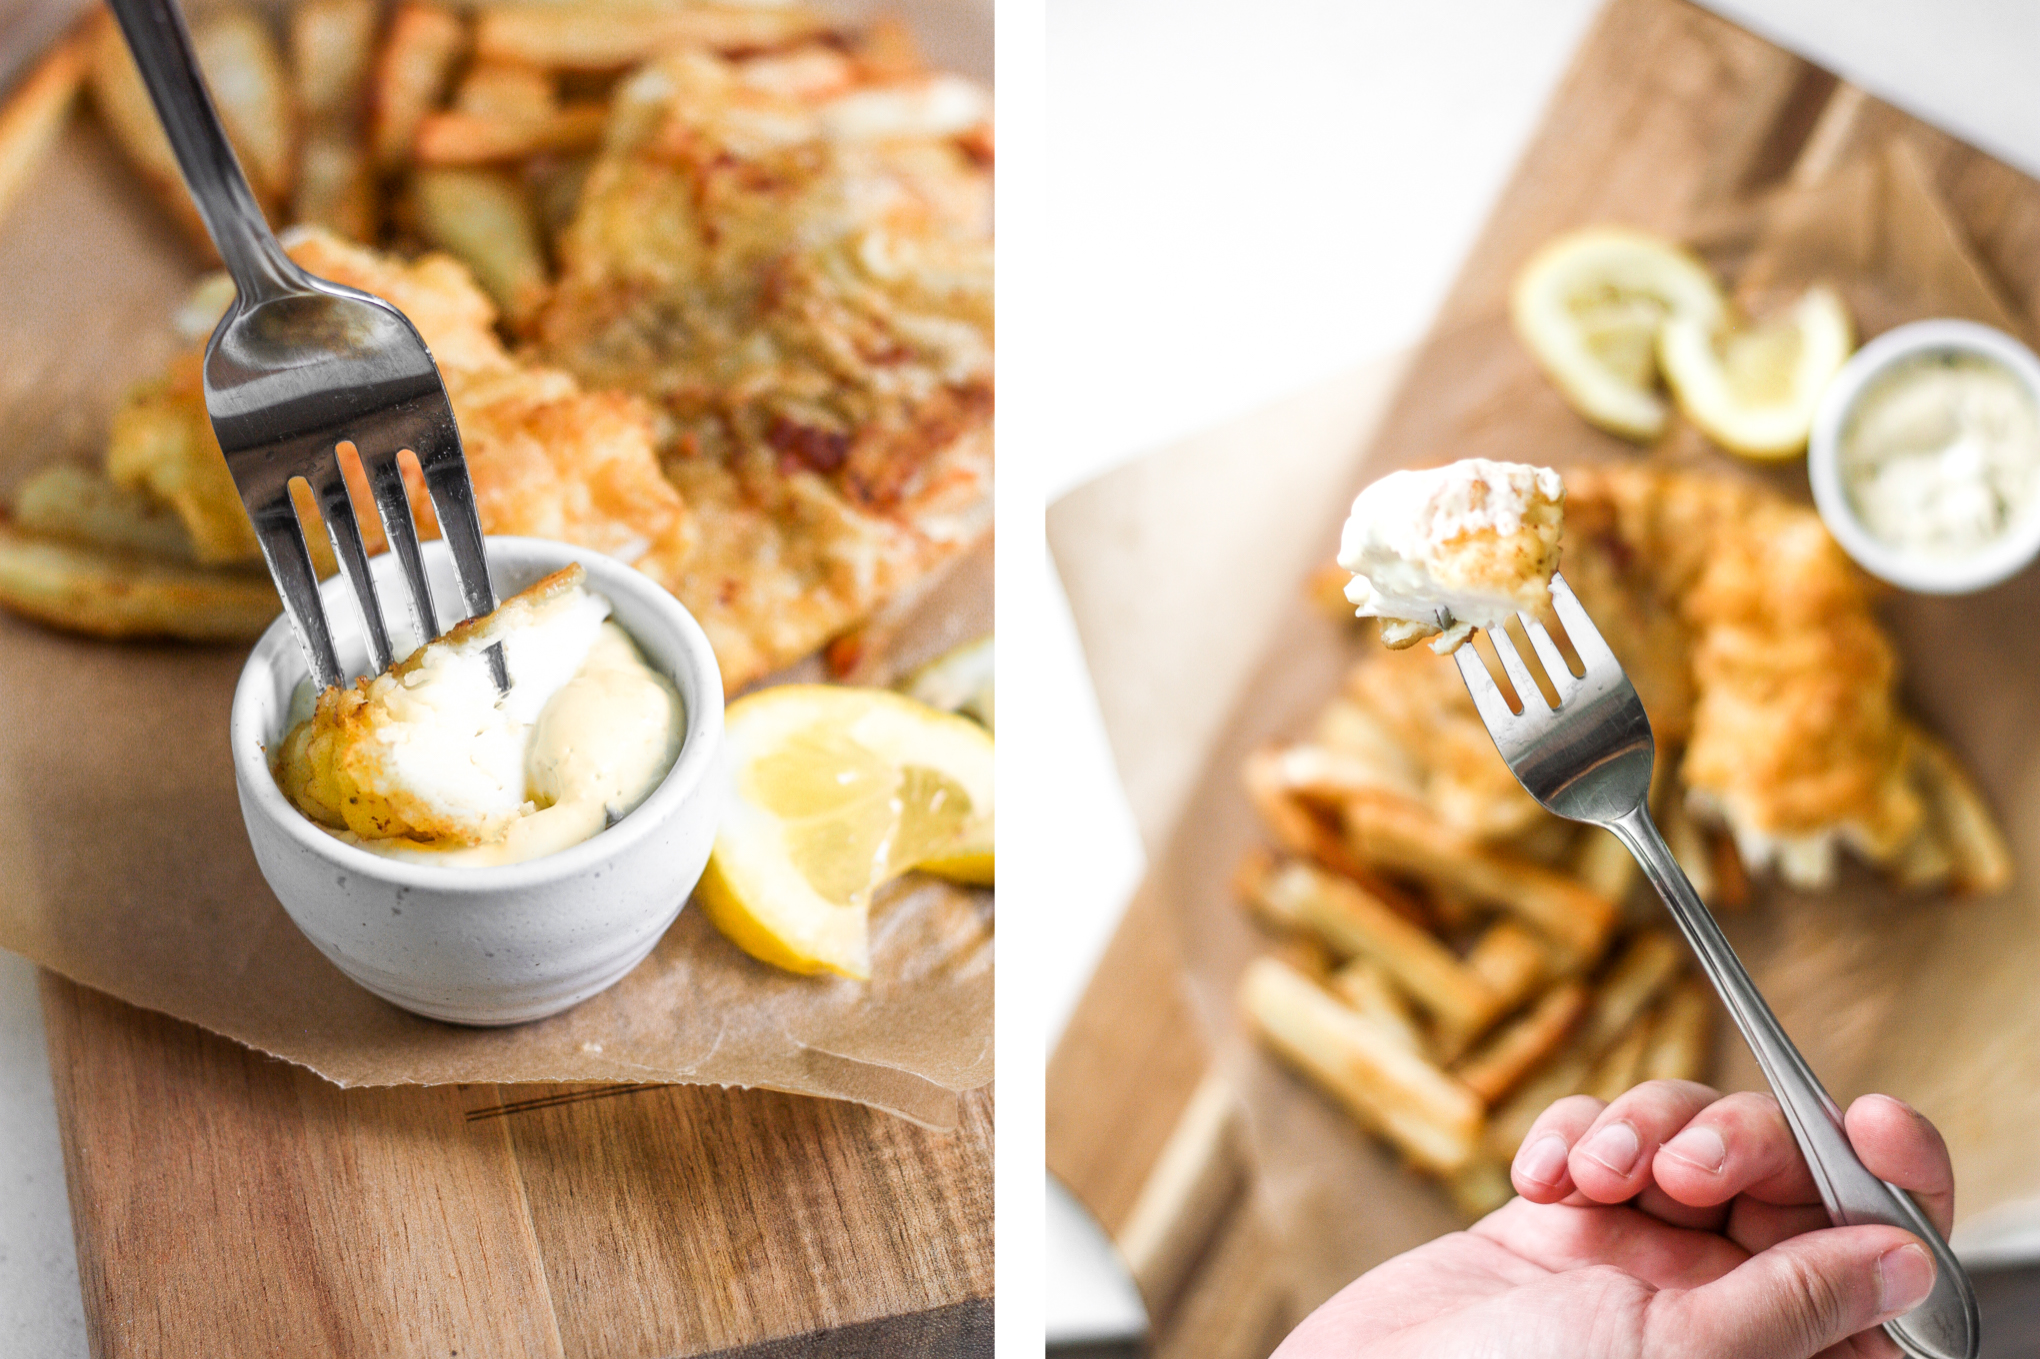 These healthy fish and chips are crispy on the outside and juicy, tender, and flakey on the inside. Pair it with homemade tartar sauce and say hello to comfort food heaven! | aheadofthyme.com